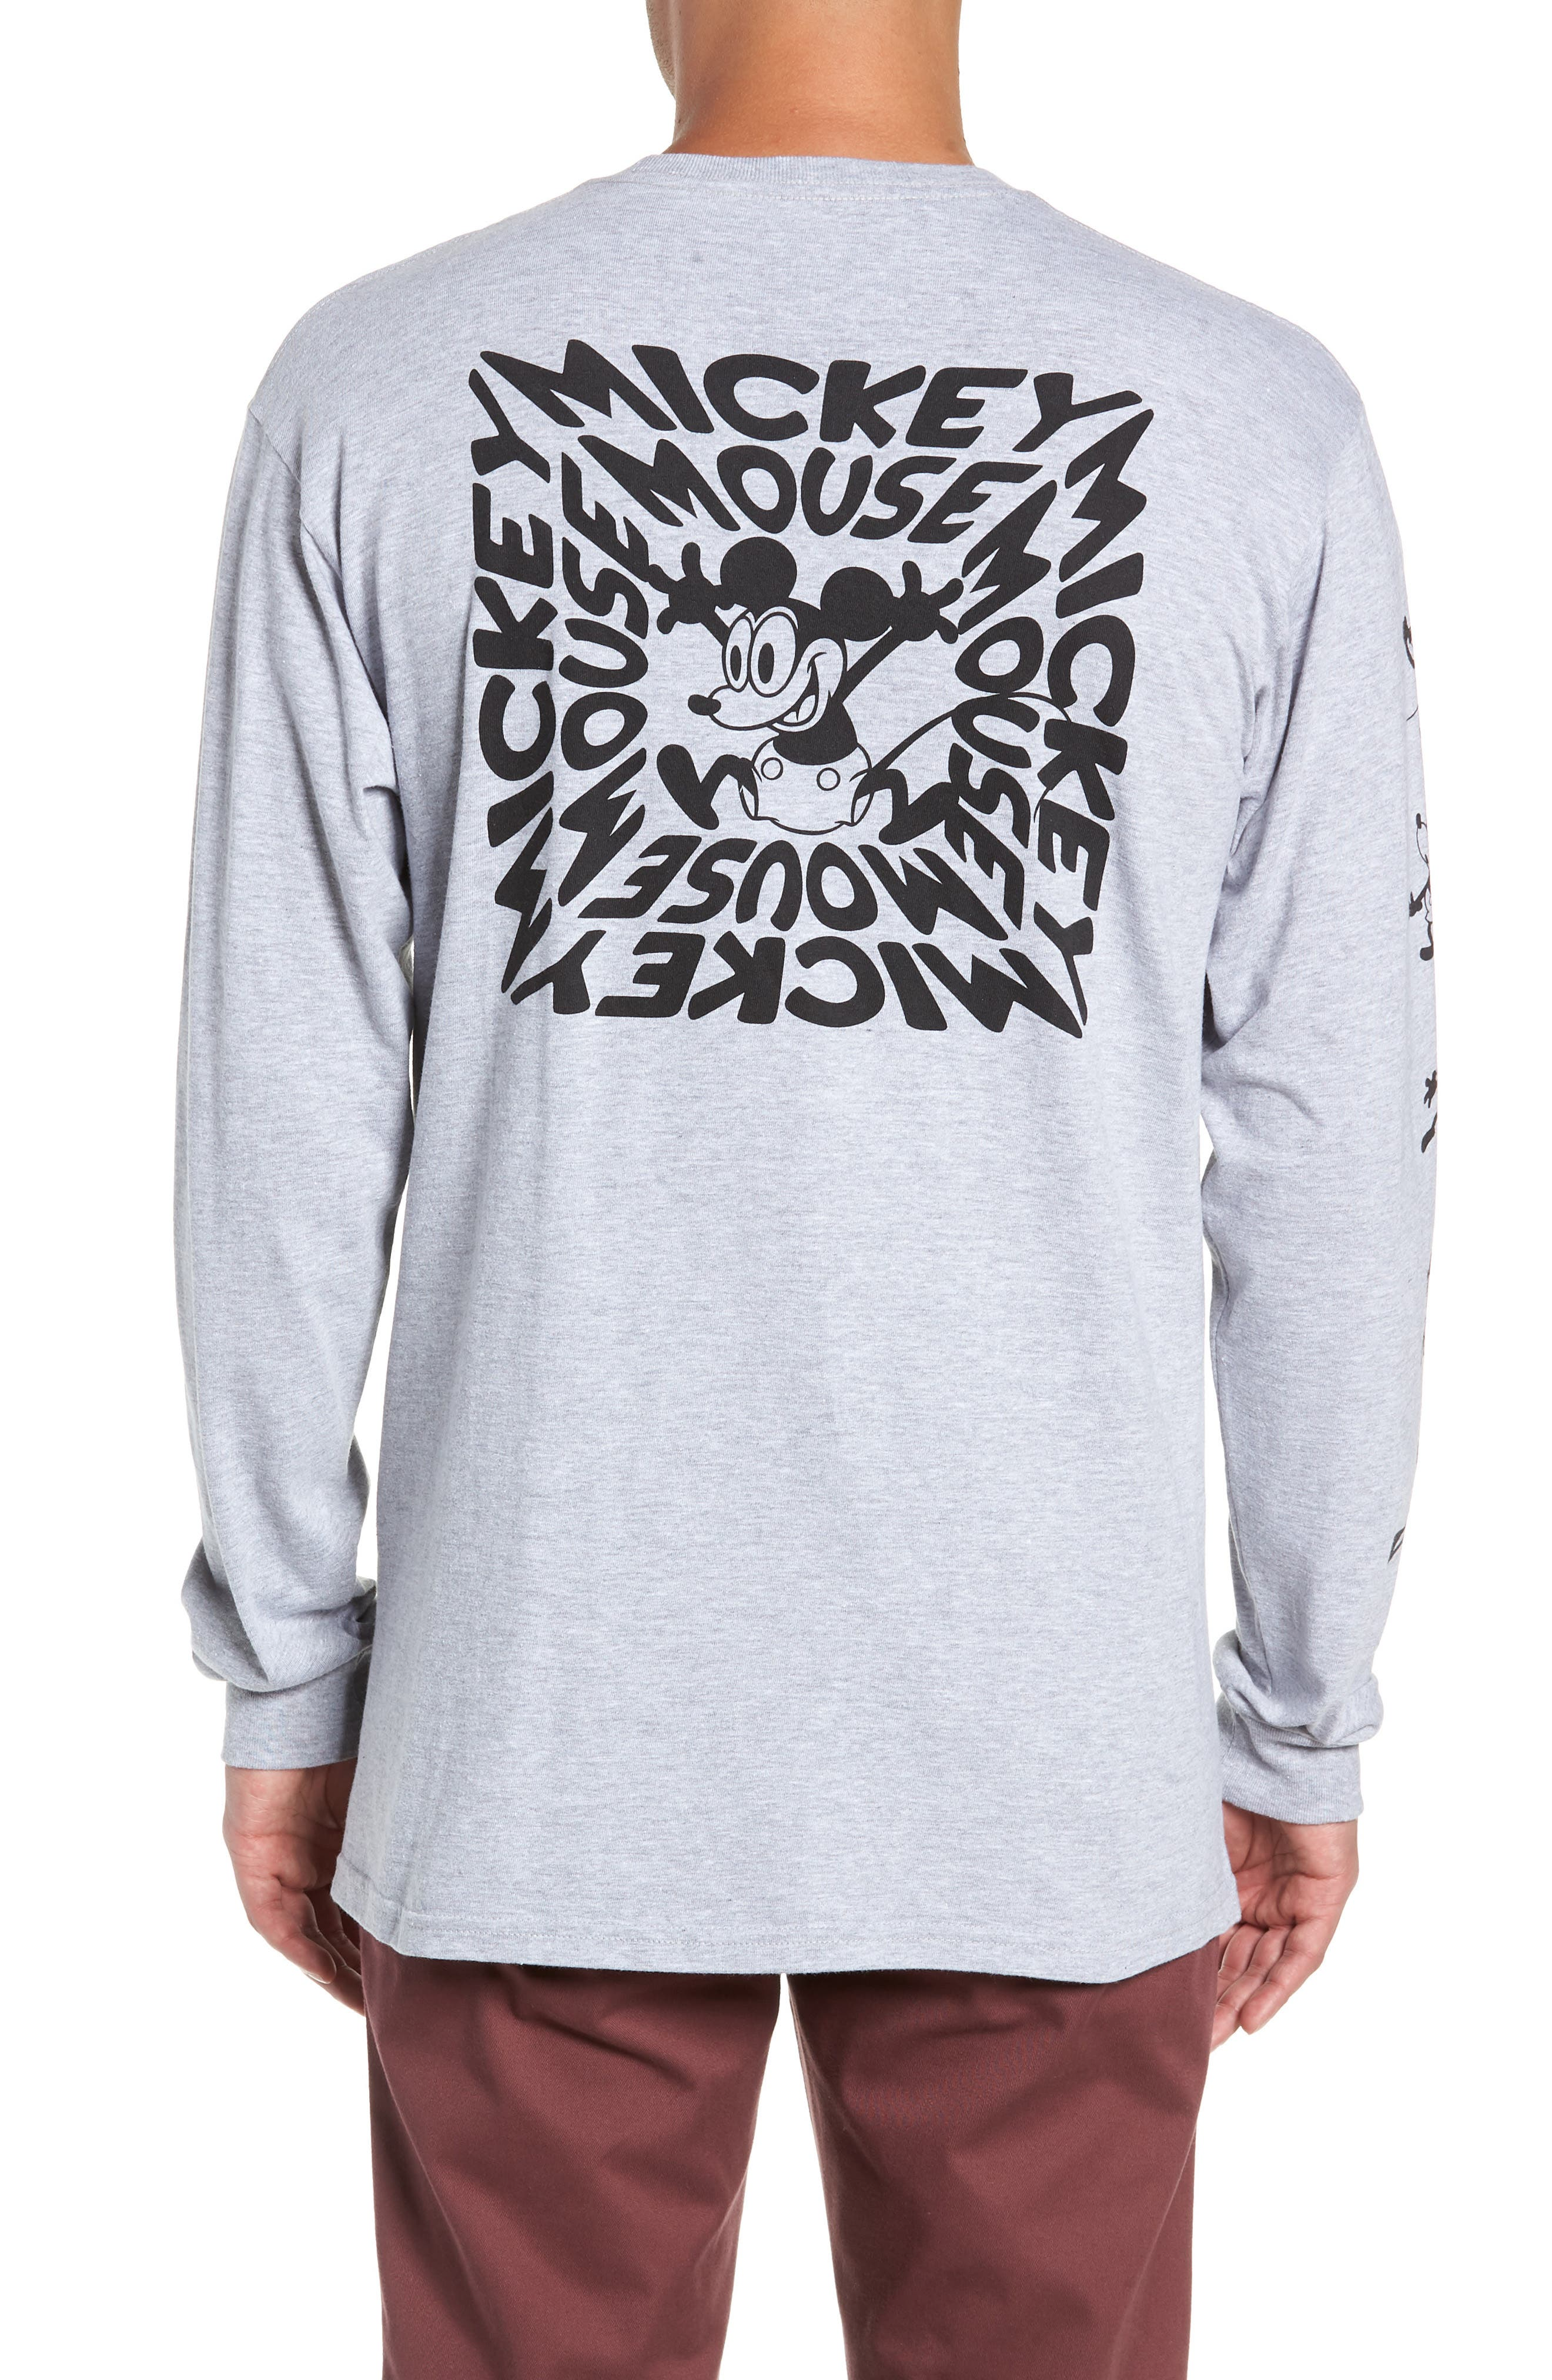 Mickey's 90th Plane Crazy Long Sleeve T-Shirt,                             Alternate thumbnail 2, color,                             ATHLETIC HEATHER